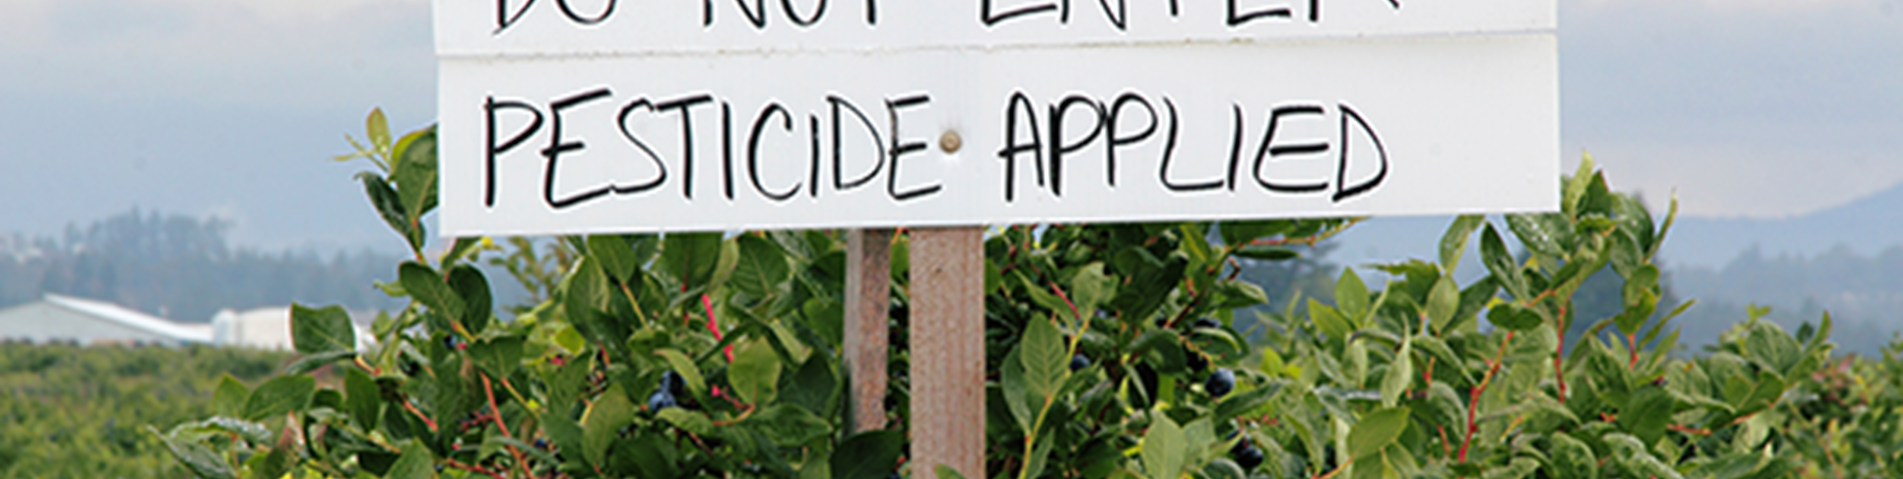 pesticide sign 2.png (3)